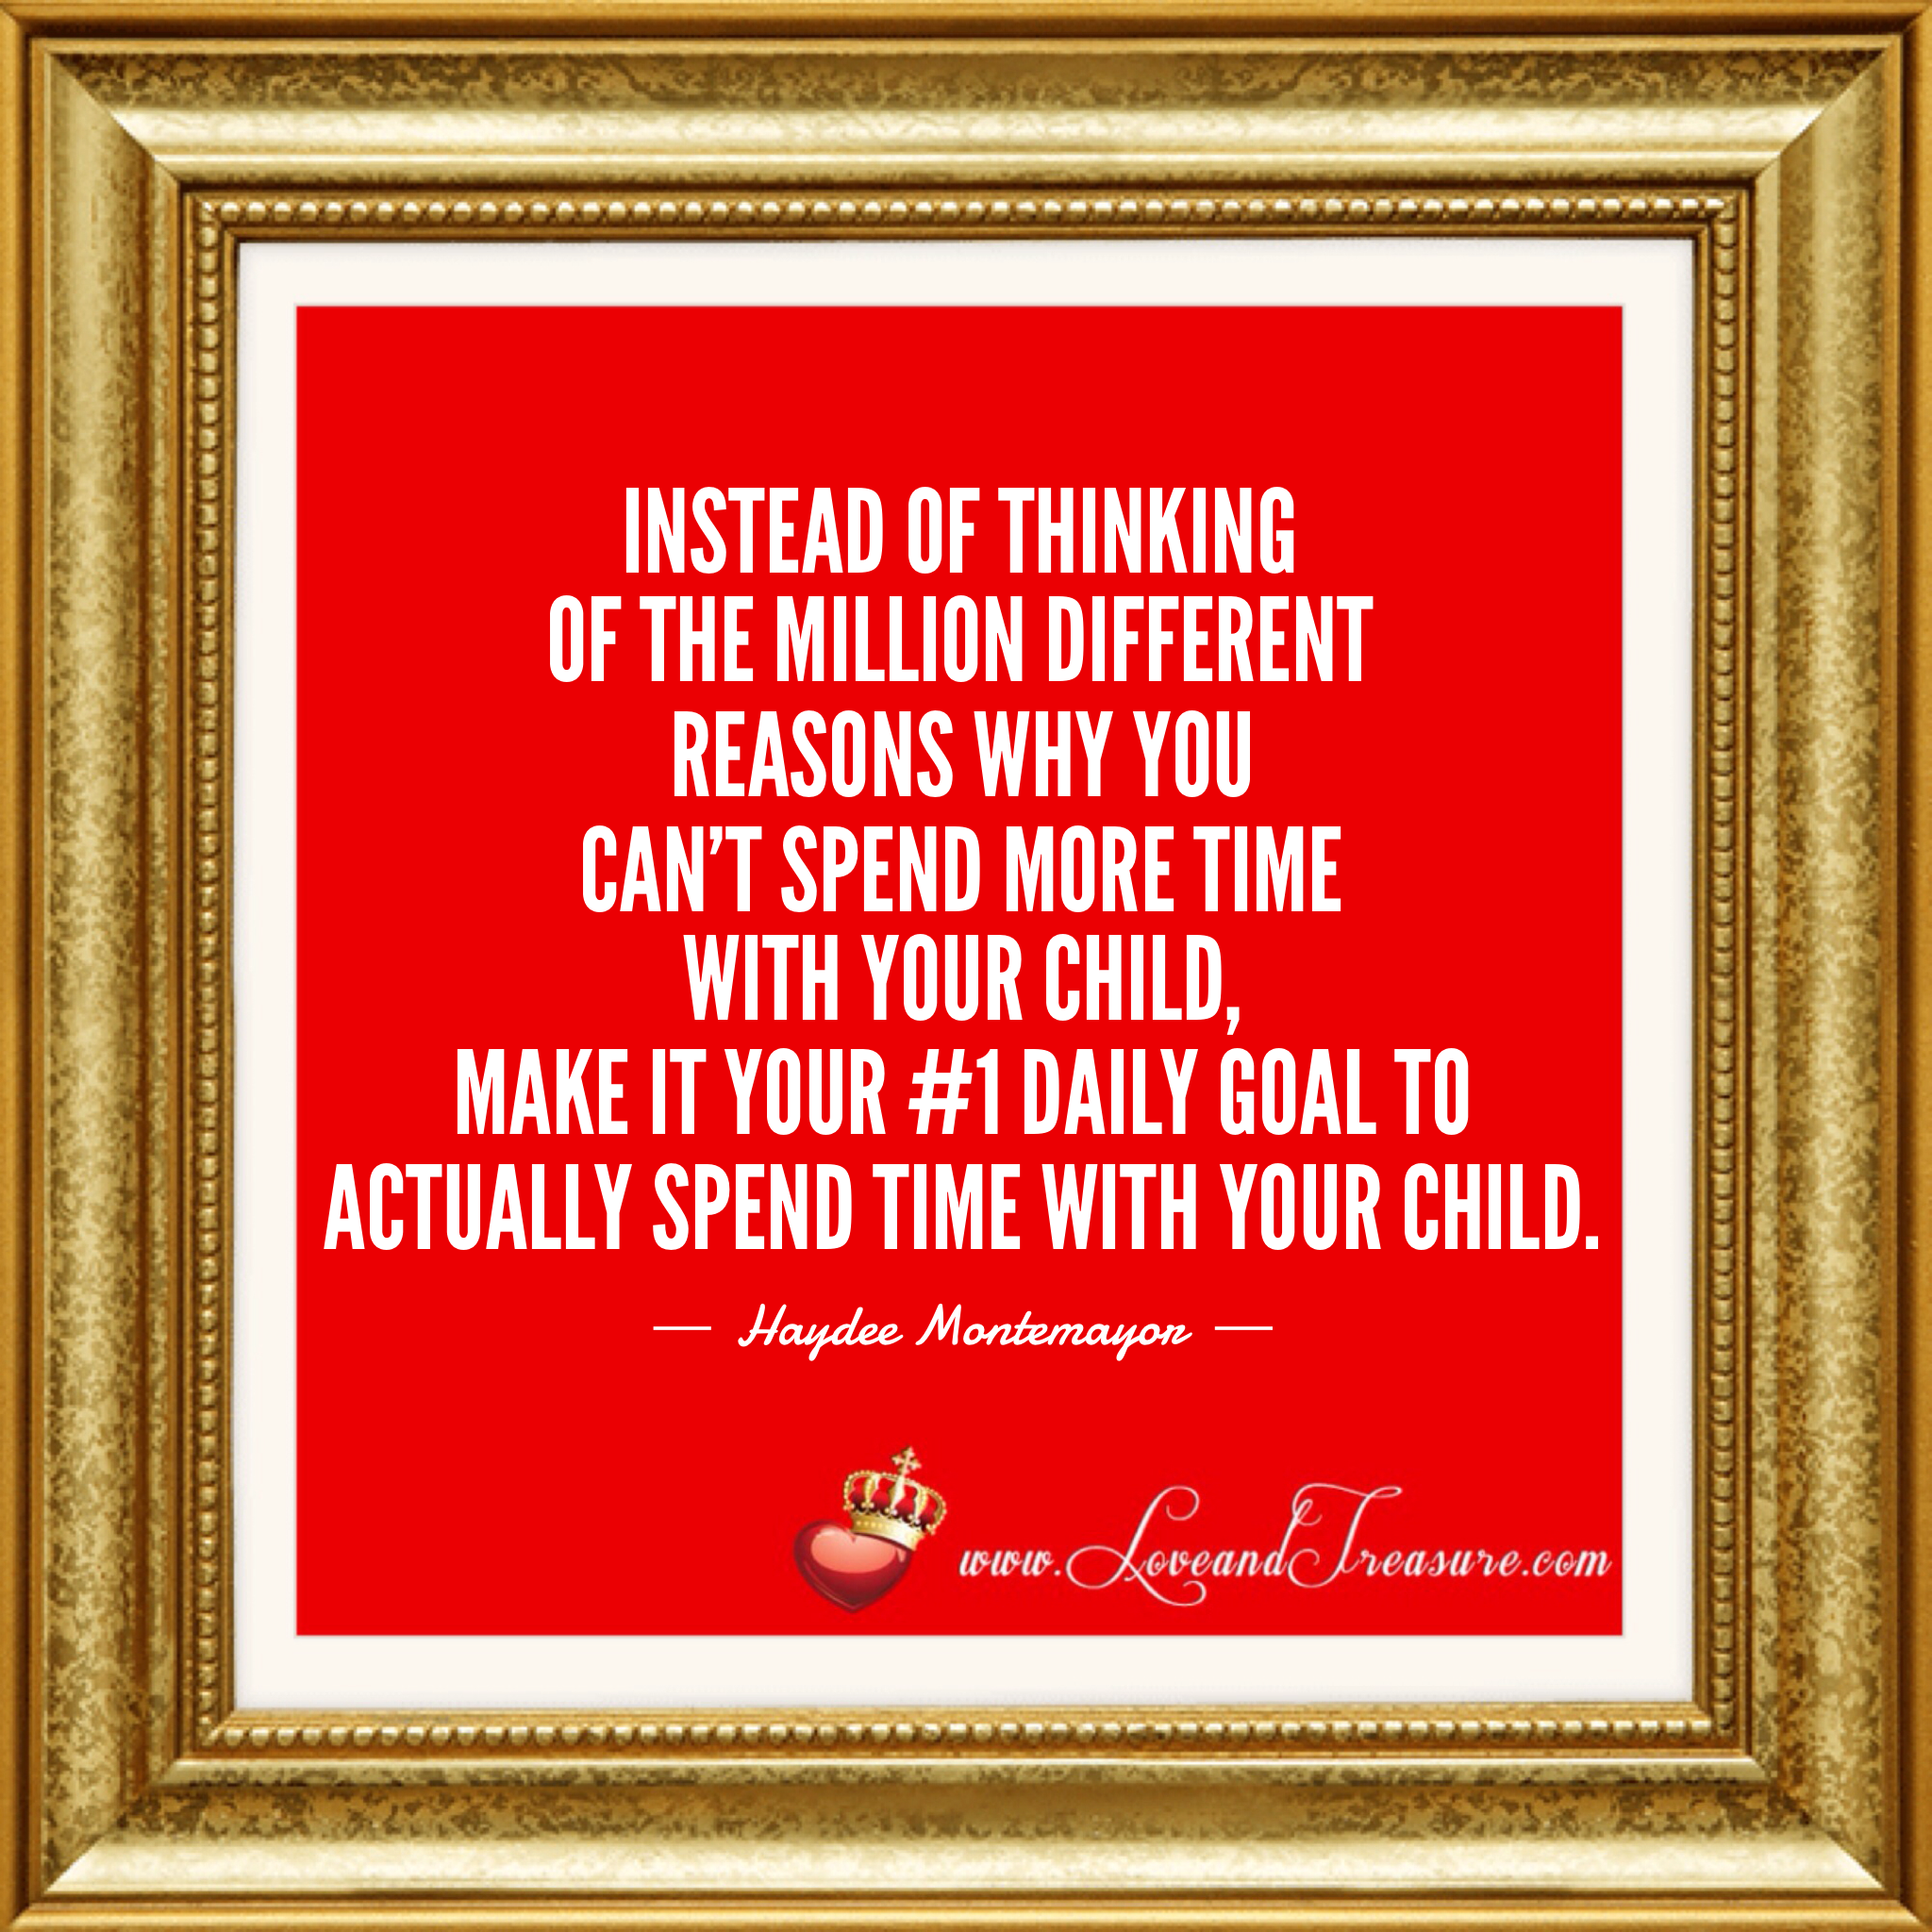 """Instead of thinking of the million different reasons why you can't spend more time with your child, make it your #1 daily goal to actually spend time with your child."" - Haydee Montemayor from Love and Treasure blog www.loveandtreasure.com"